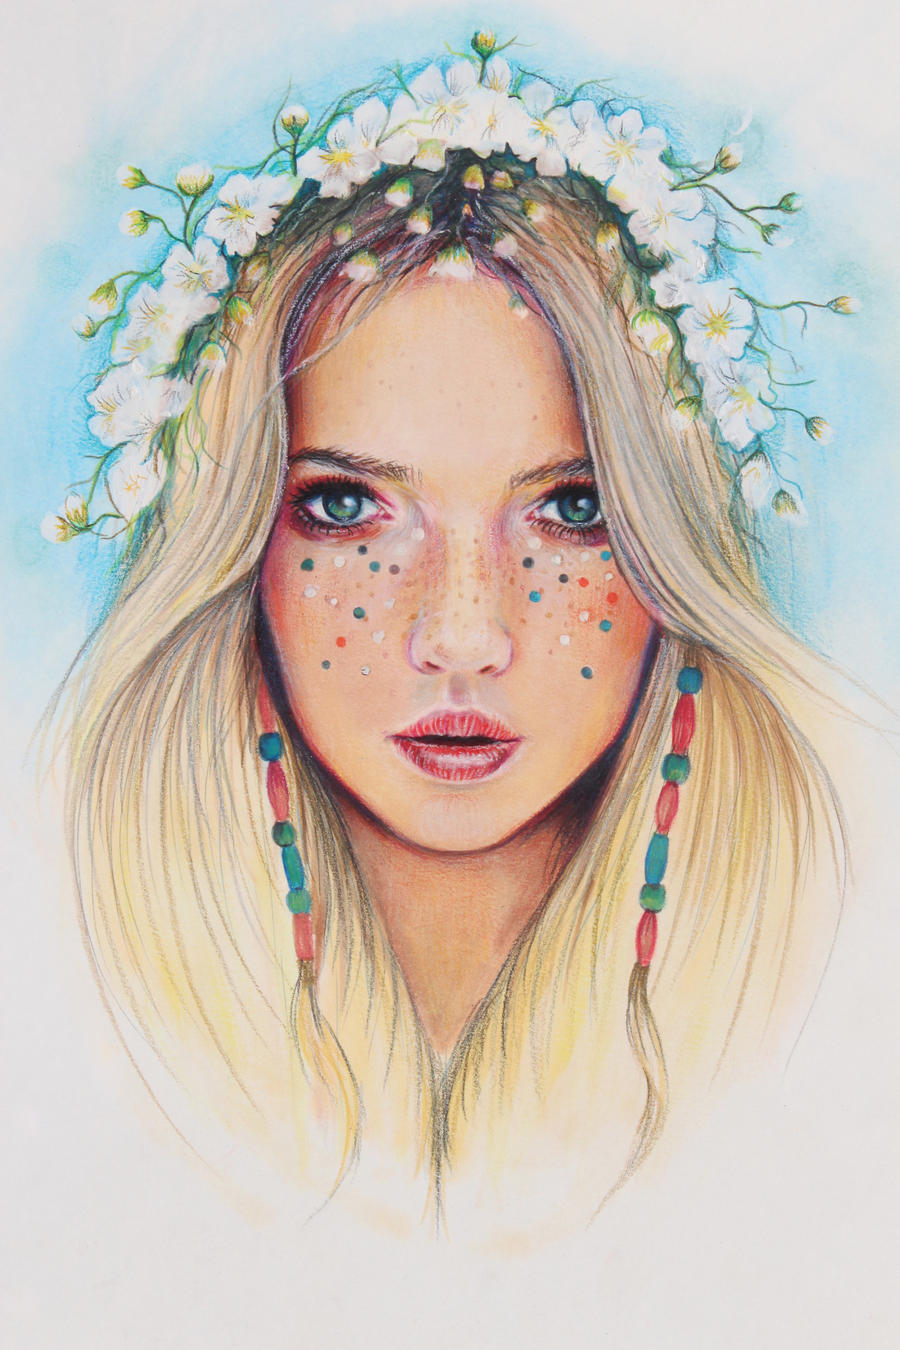 Hippie Chick by JoanneBarby on DeviantArt